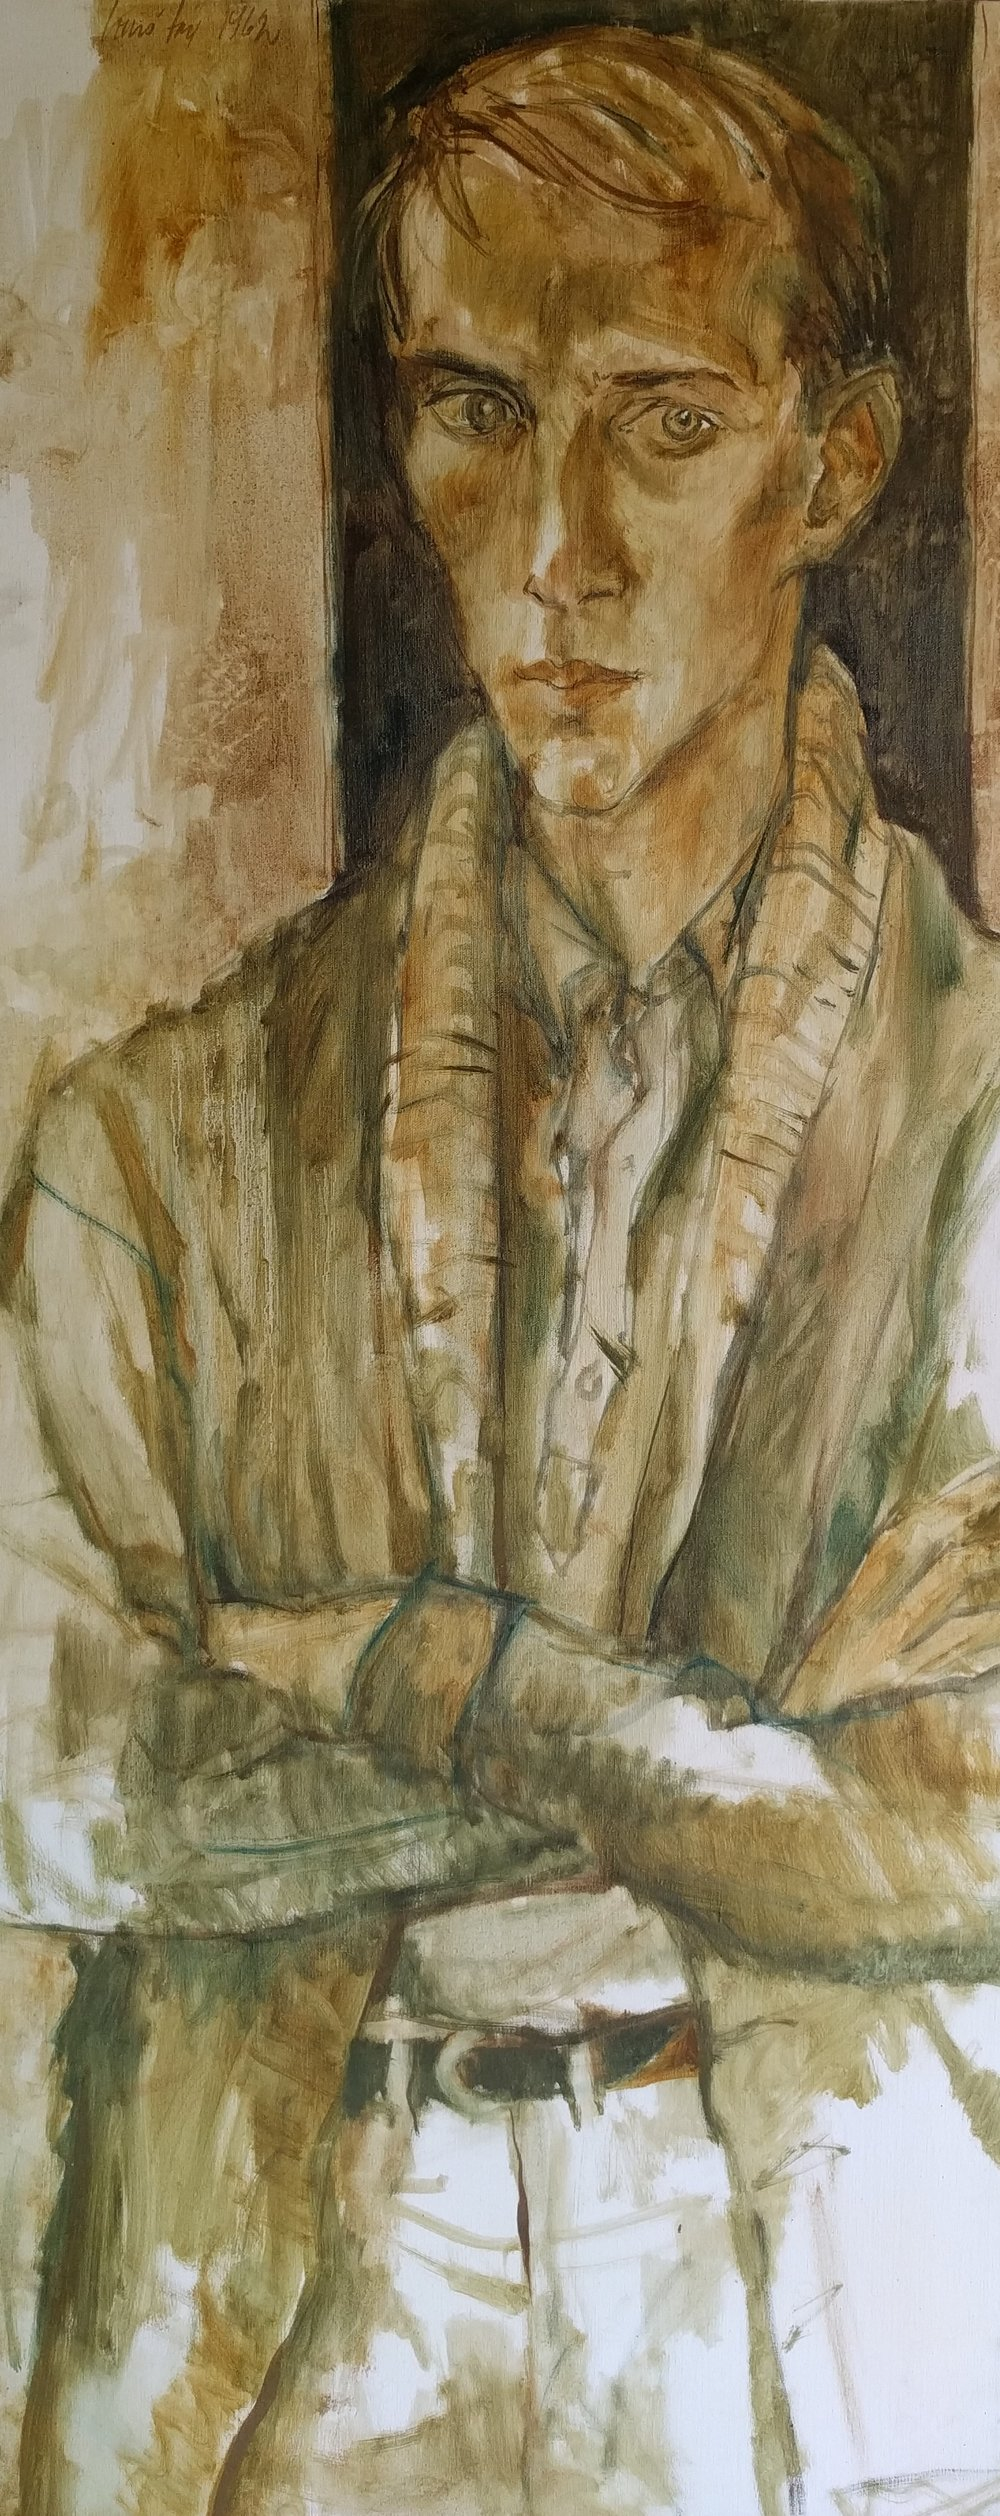 Clark Stewart is an artist and Professor Emeritus of the School of Art at The University of Tennessee. - Portrait by Louis Fox, 1962